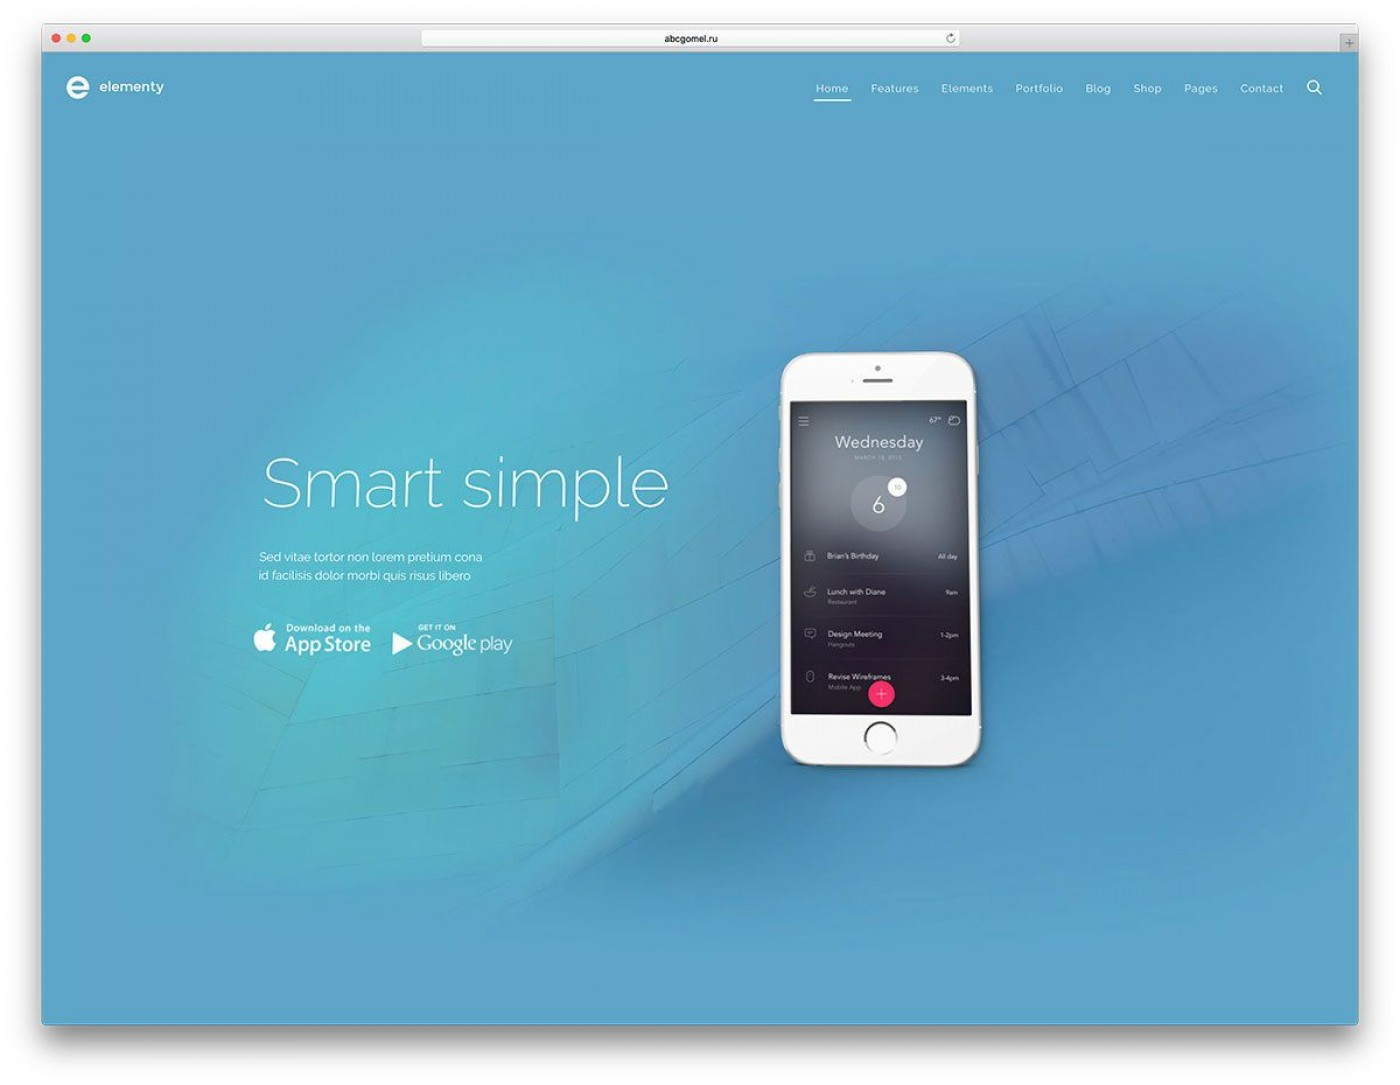 003 Awesome One Page Website Template Free Download Html5 Image  Parallax1400